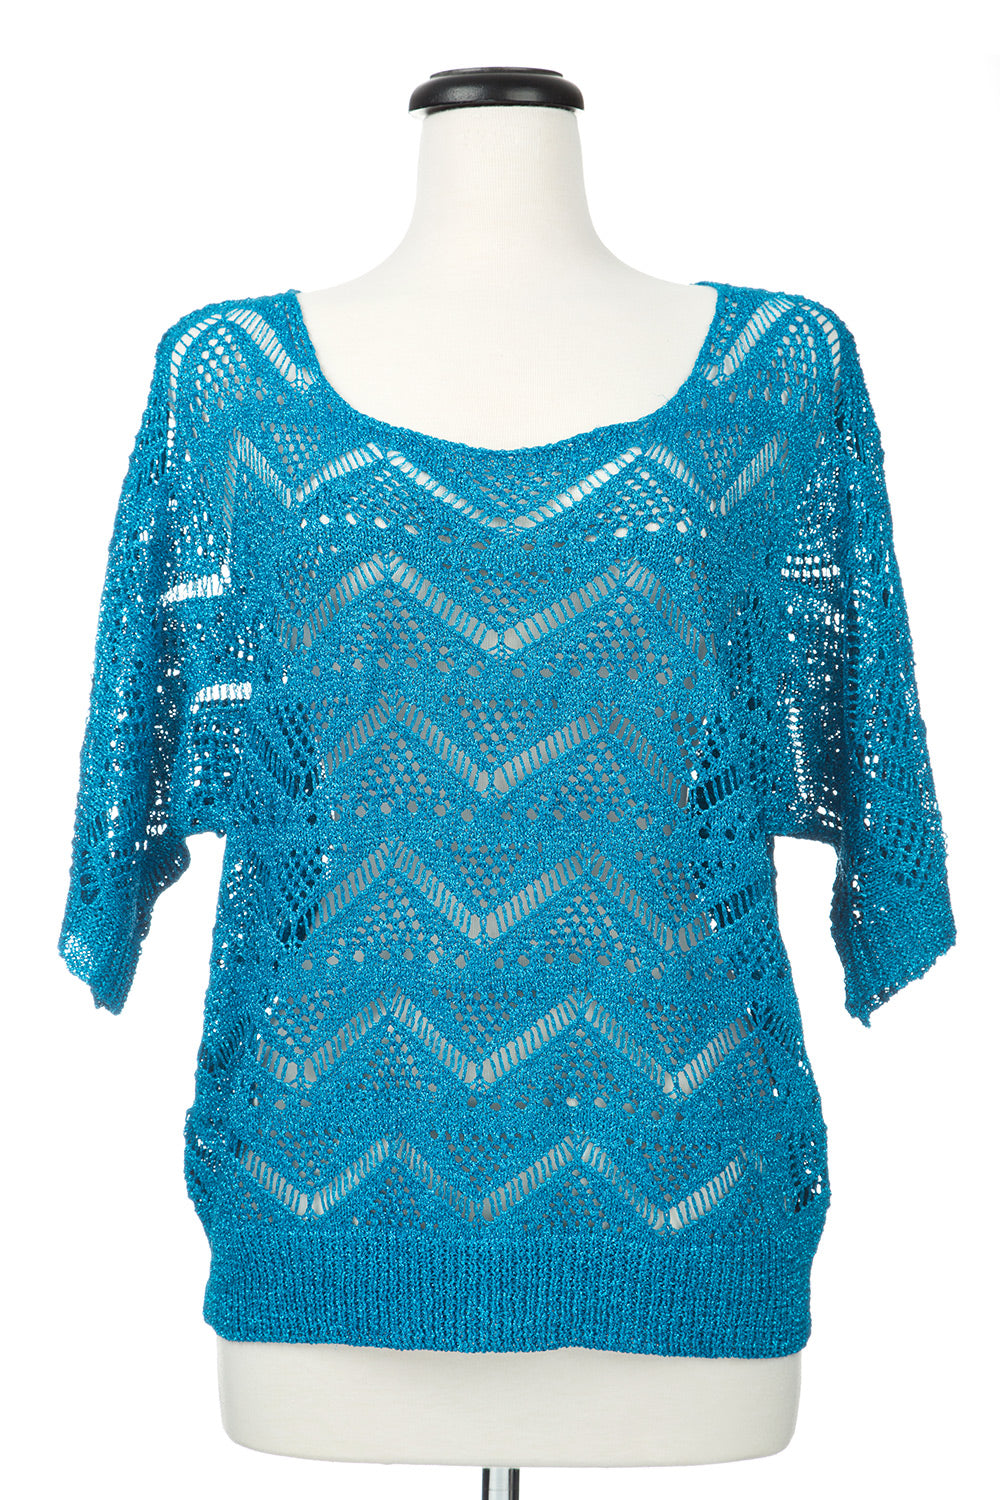 Type 4 Glitz and Glam Top in Blue